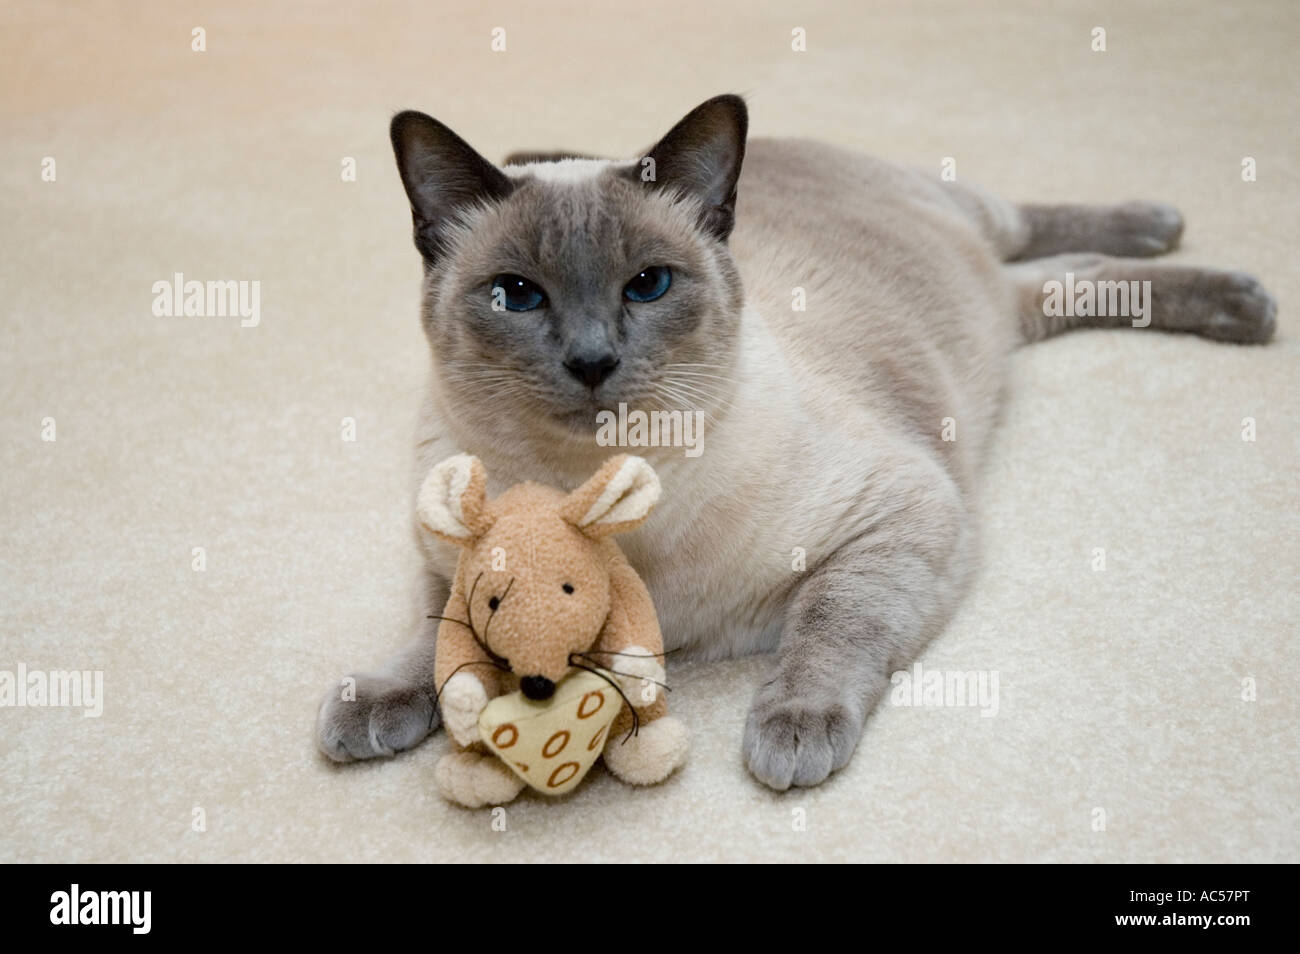 153fcb0fdbcb Blue Point Siamese cat lying down with a stuffed mouse toy. - Stock Image